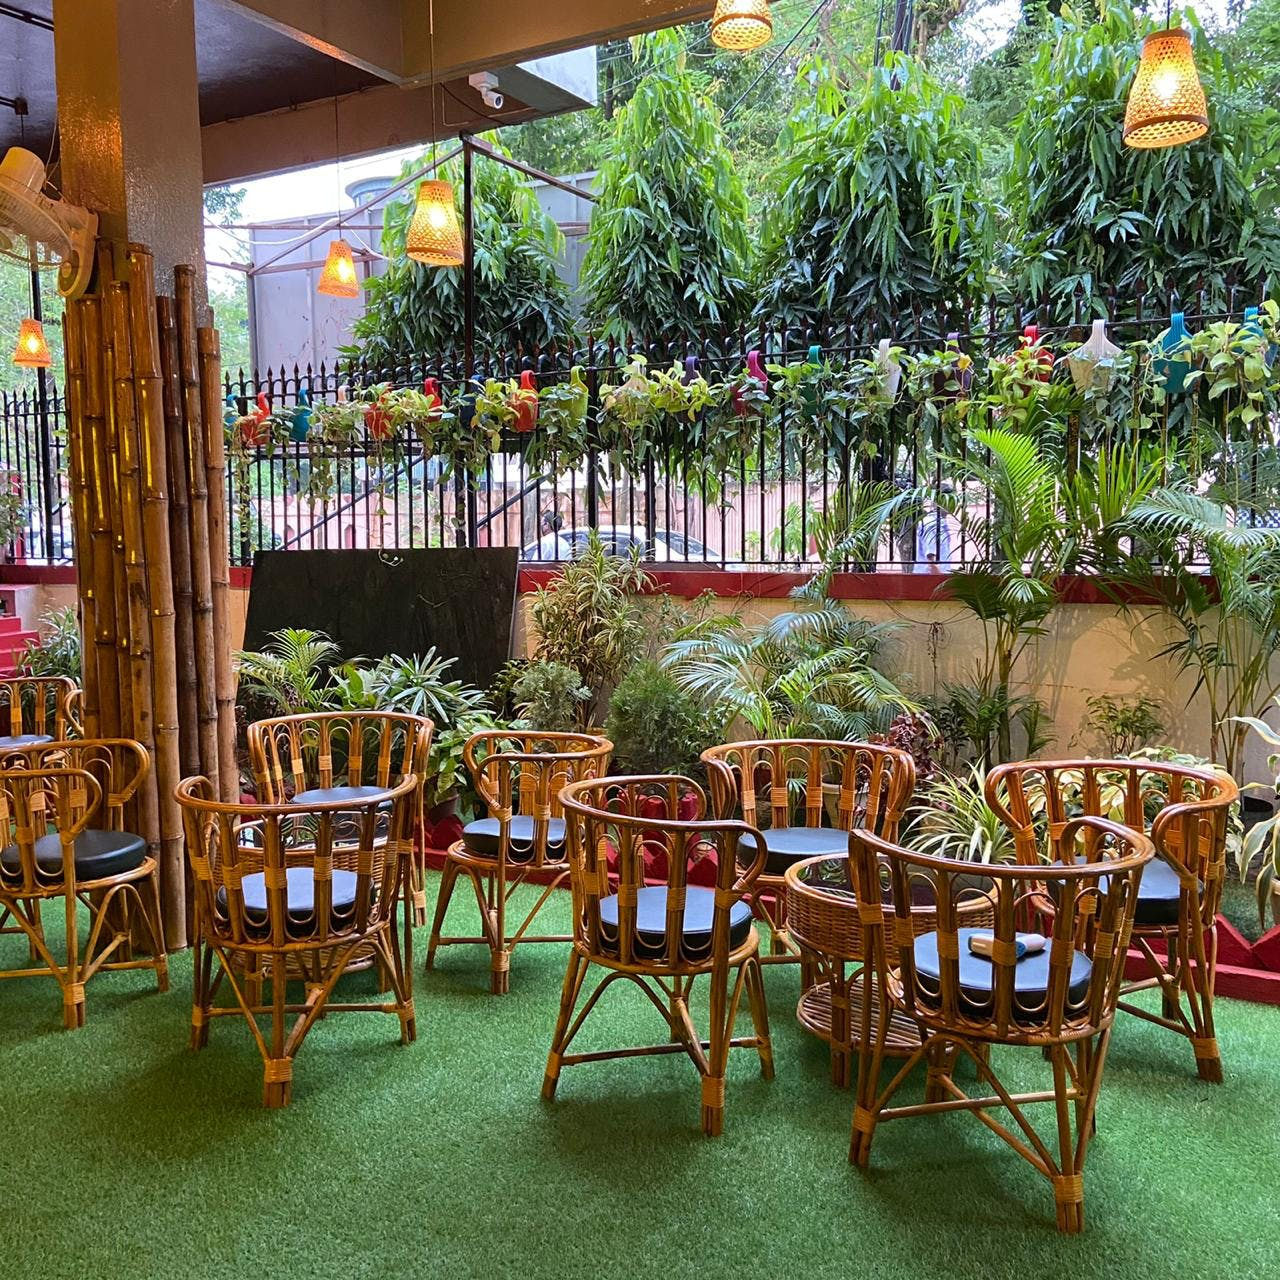 Restaurant,Building,Table,Café,Food court,Furniture,Leisure,Tree,Resort,Outdoor table